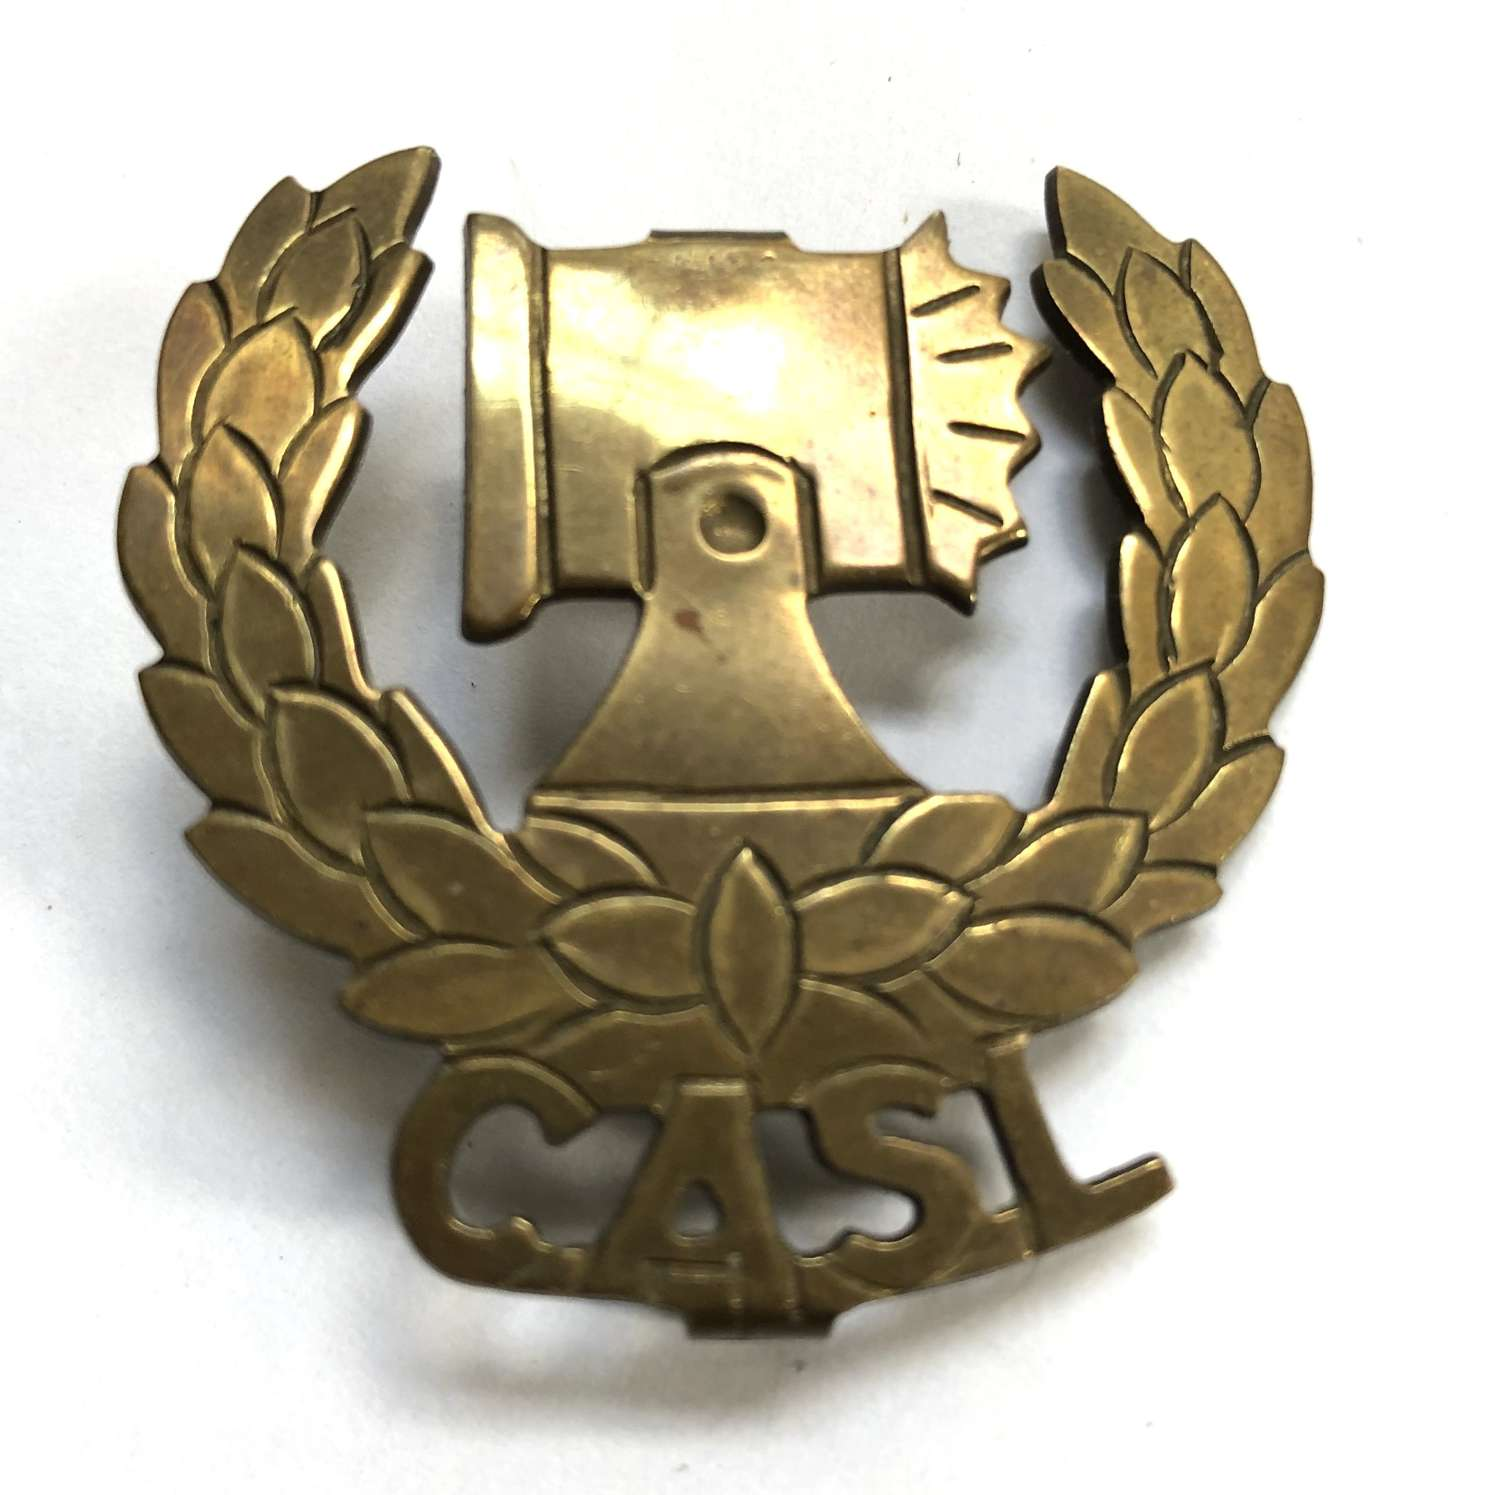 South Africa. Cape Artillery and Searchlight arm badge circa 1931-33